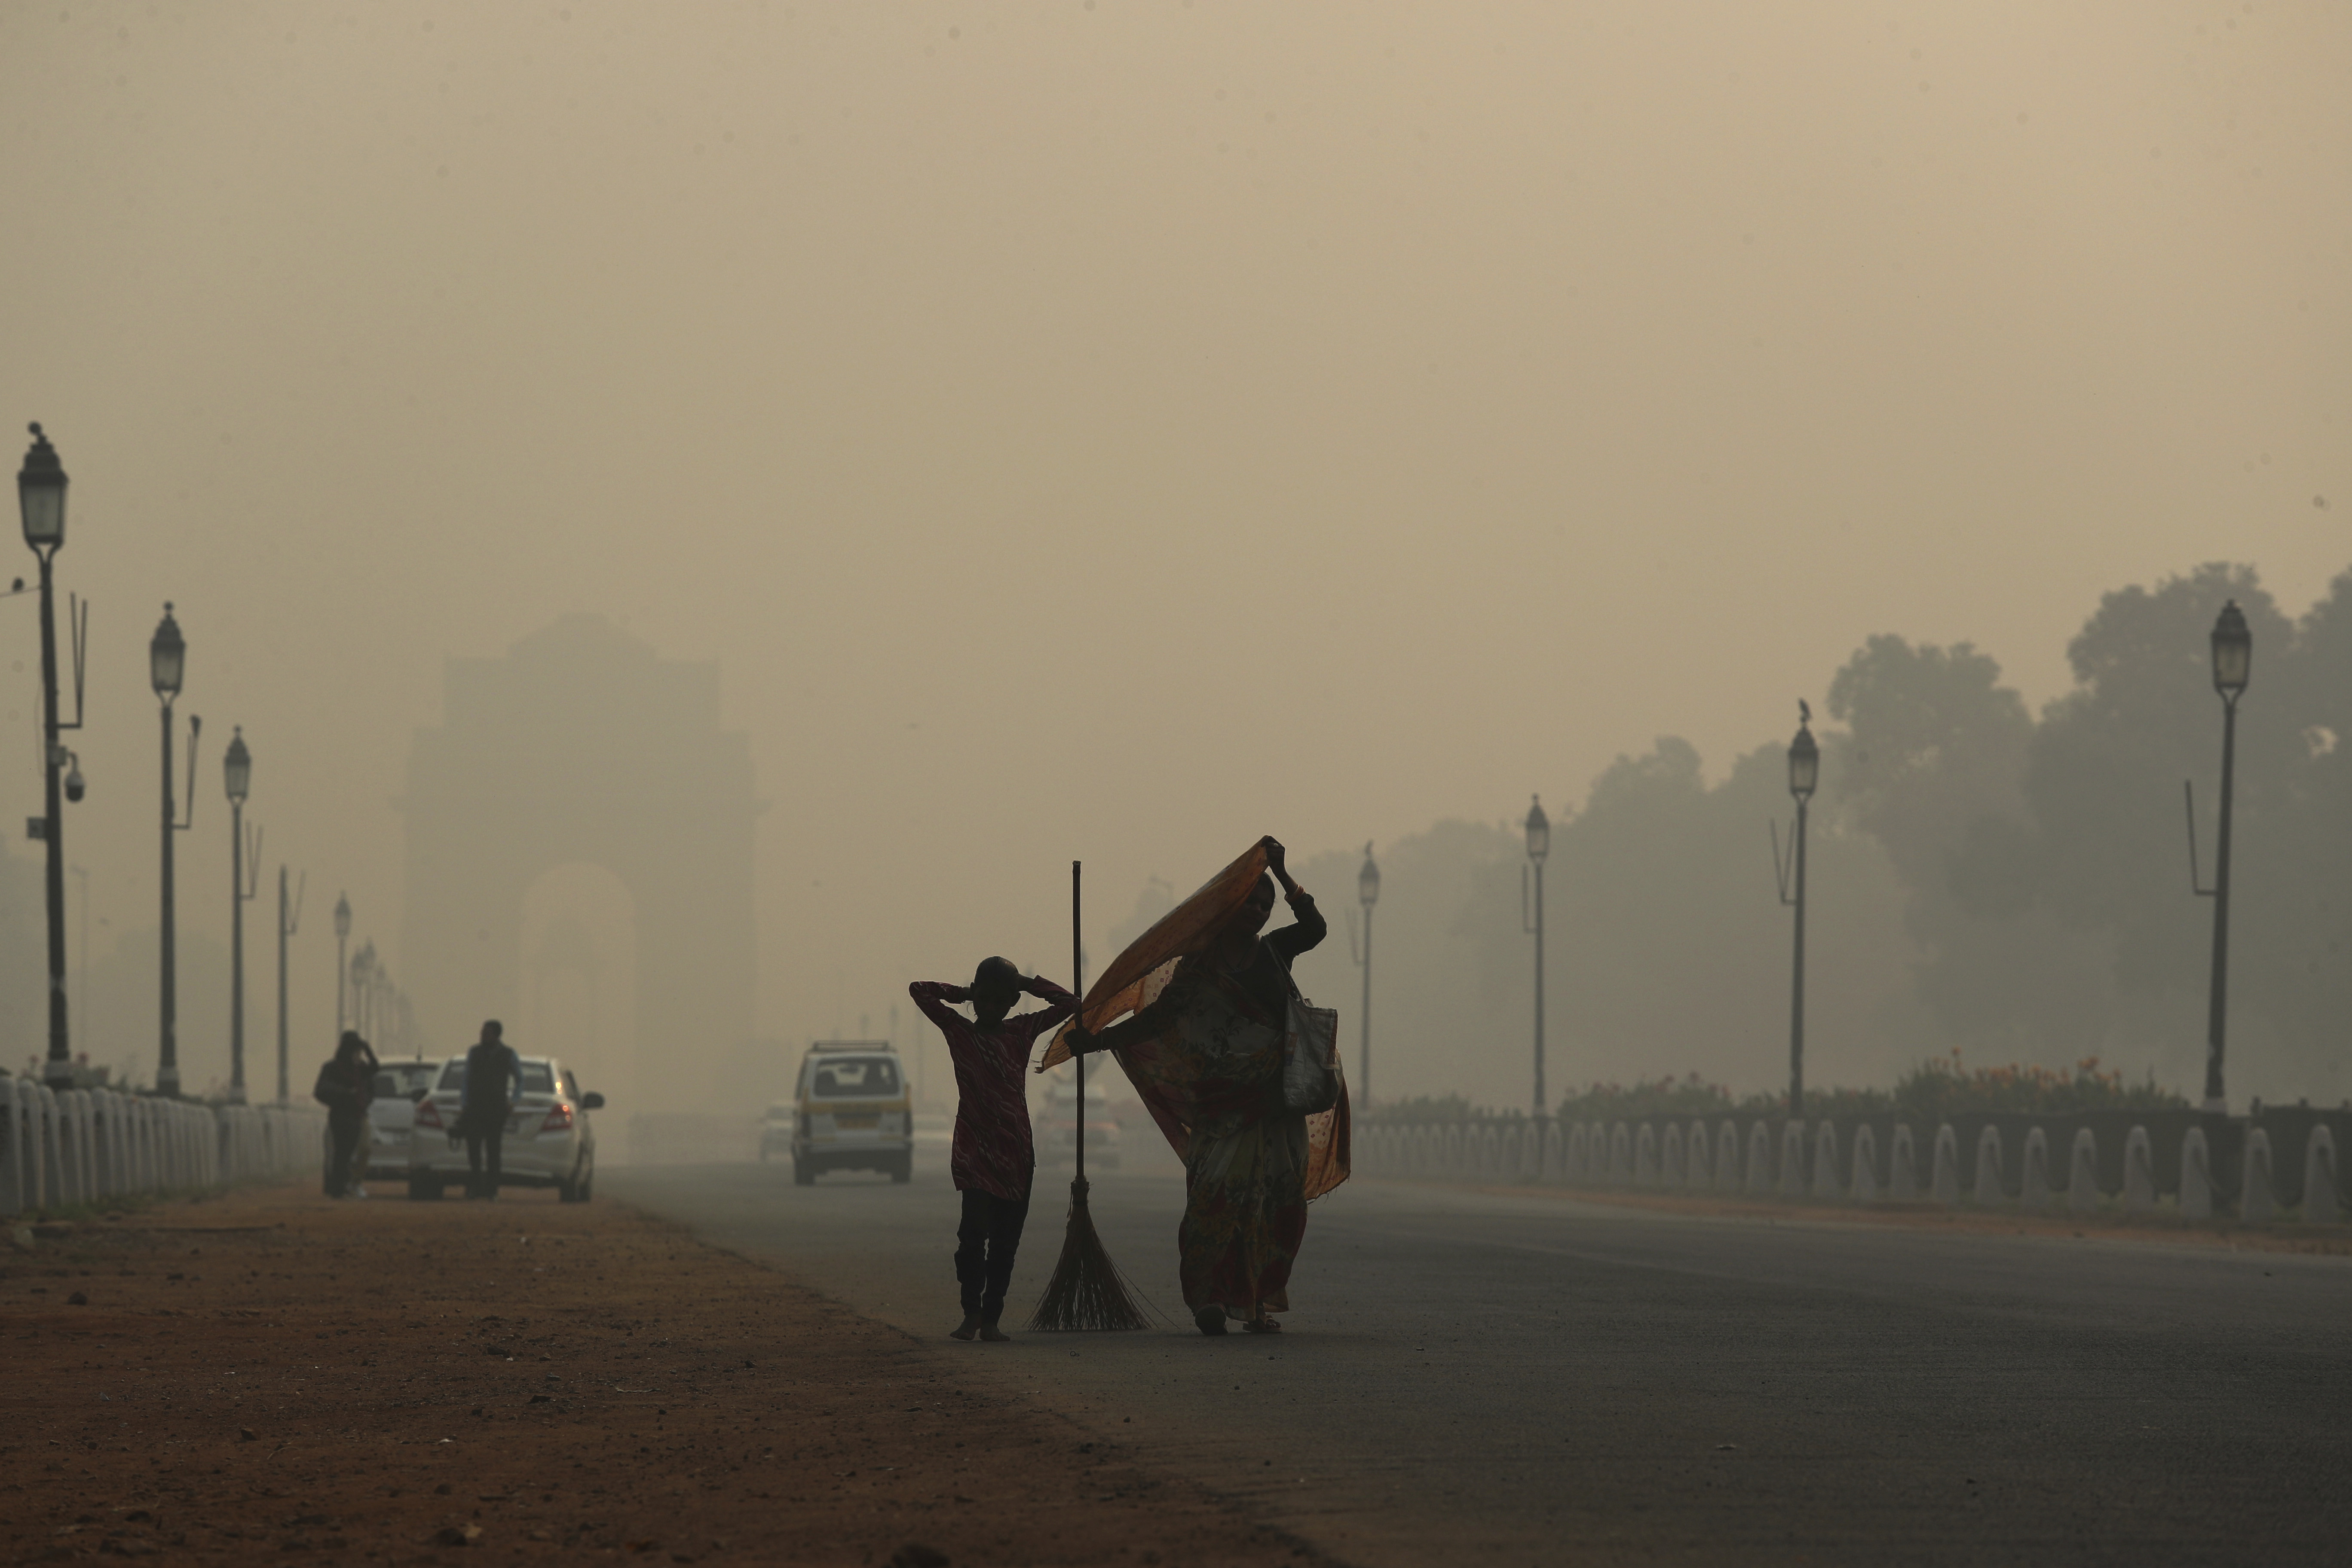 A municipal worker with her daughter leaves after sweeping the India Gate area as a thick lawyer of pollution haze hangs a day after Diwali festival, in New Delhi, India, Thursday, Nov. 8, 2018. Toxic smog shrouds the Indian capital as air quality falls to hazardous levels with tens of thousands of people setting off massive firecrackers to celebrate the major Hindu festival of Diwali on Wednesday night. Photo: AP